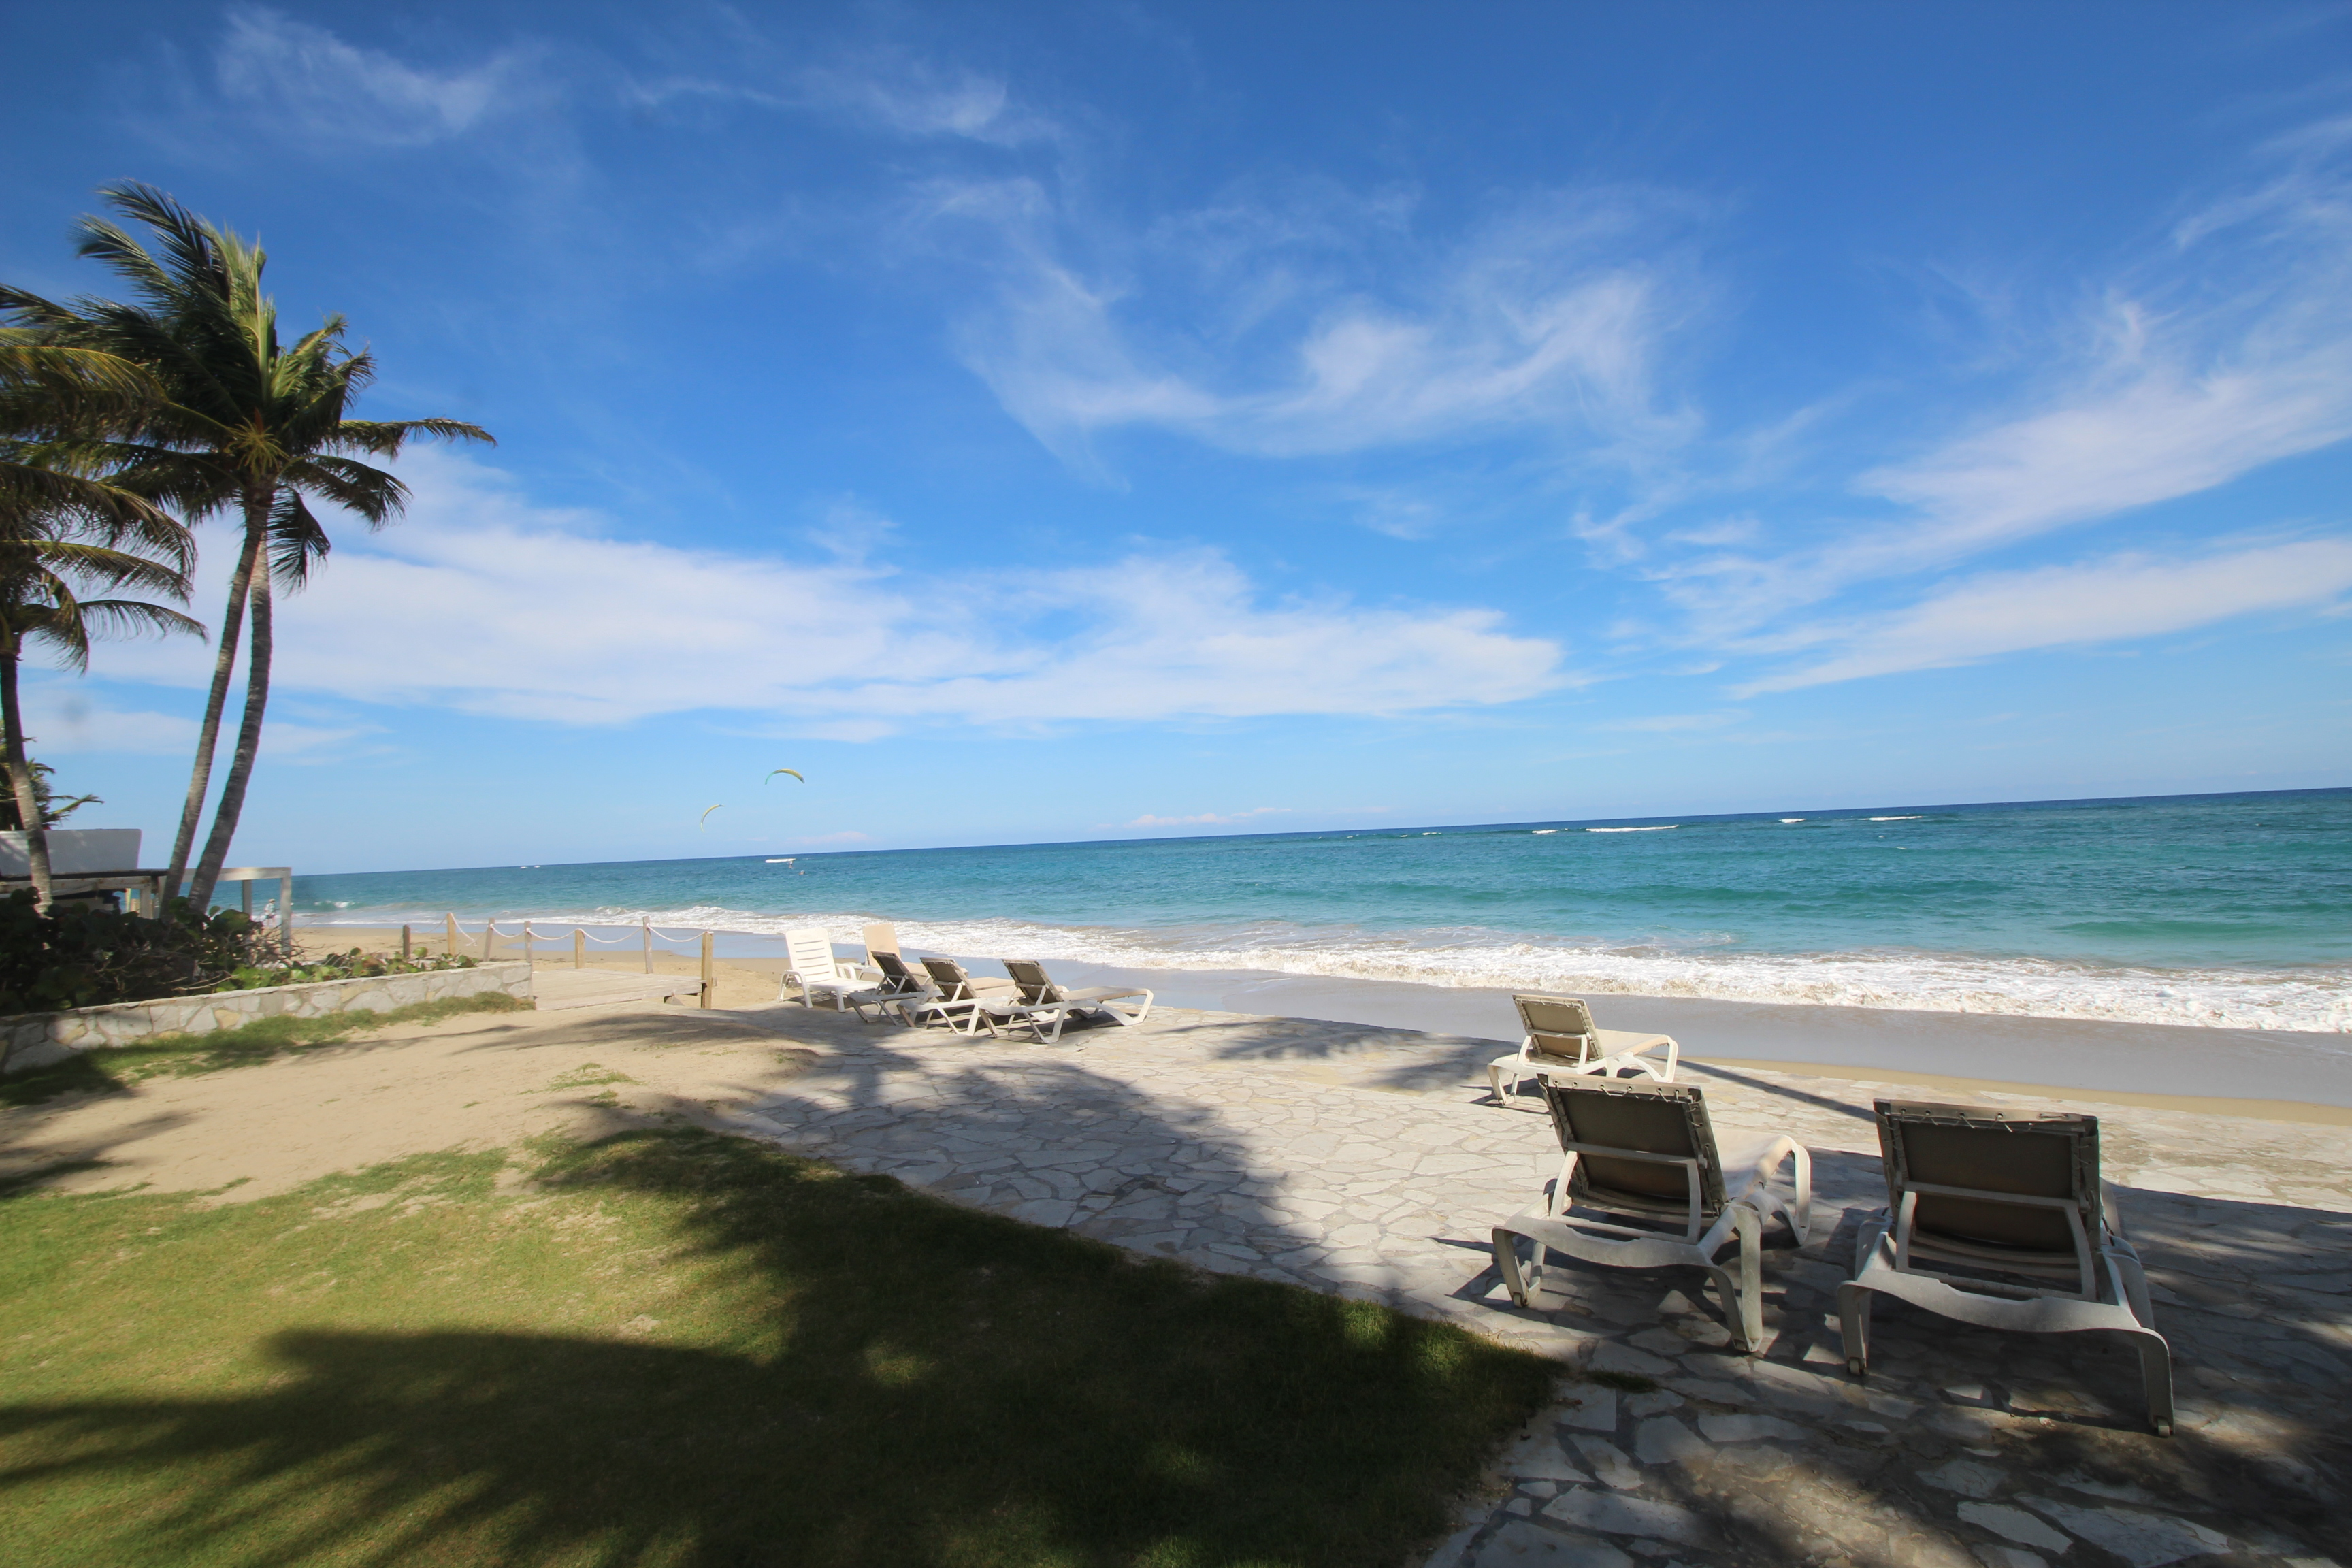 #1 Beachfront penthouse for sale right on Kite Beach Cabarete